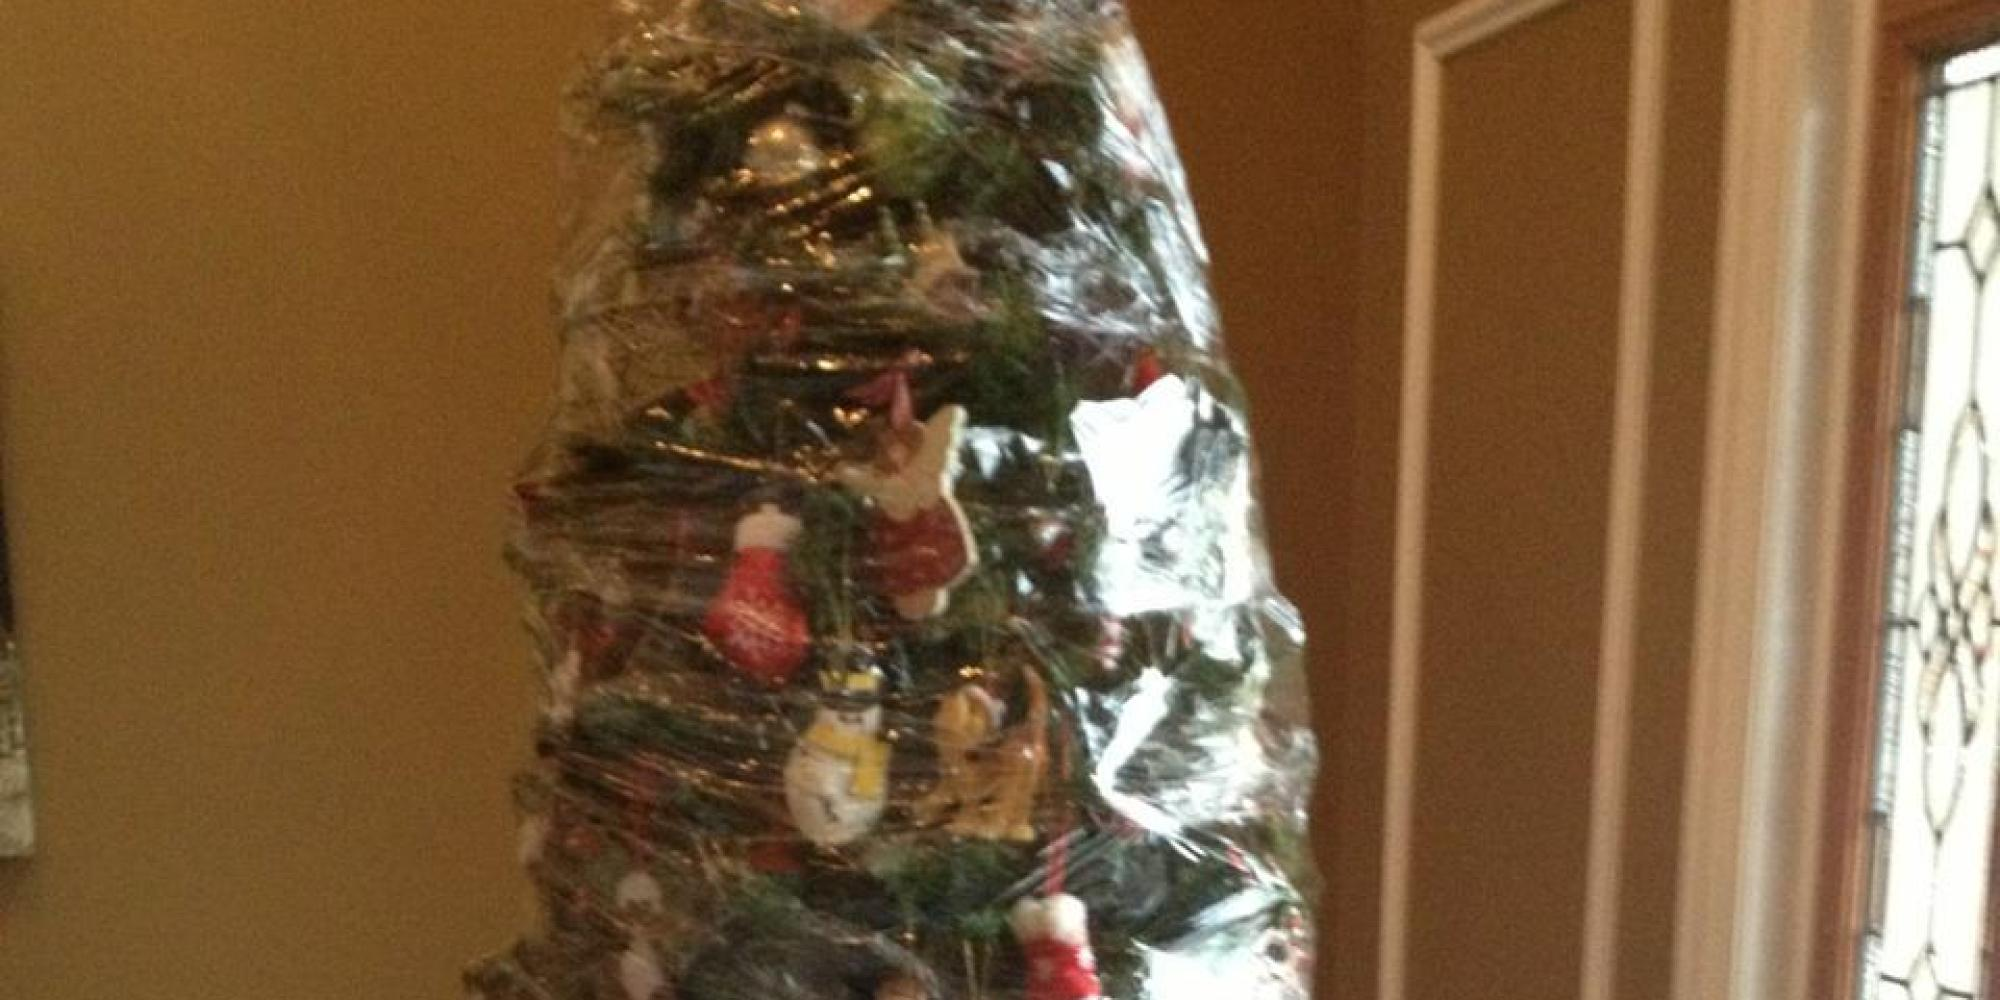 THIS Is How You Take Down A Christmas Tree (PICTURE